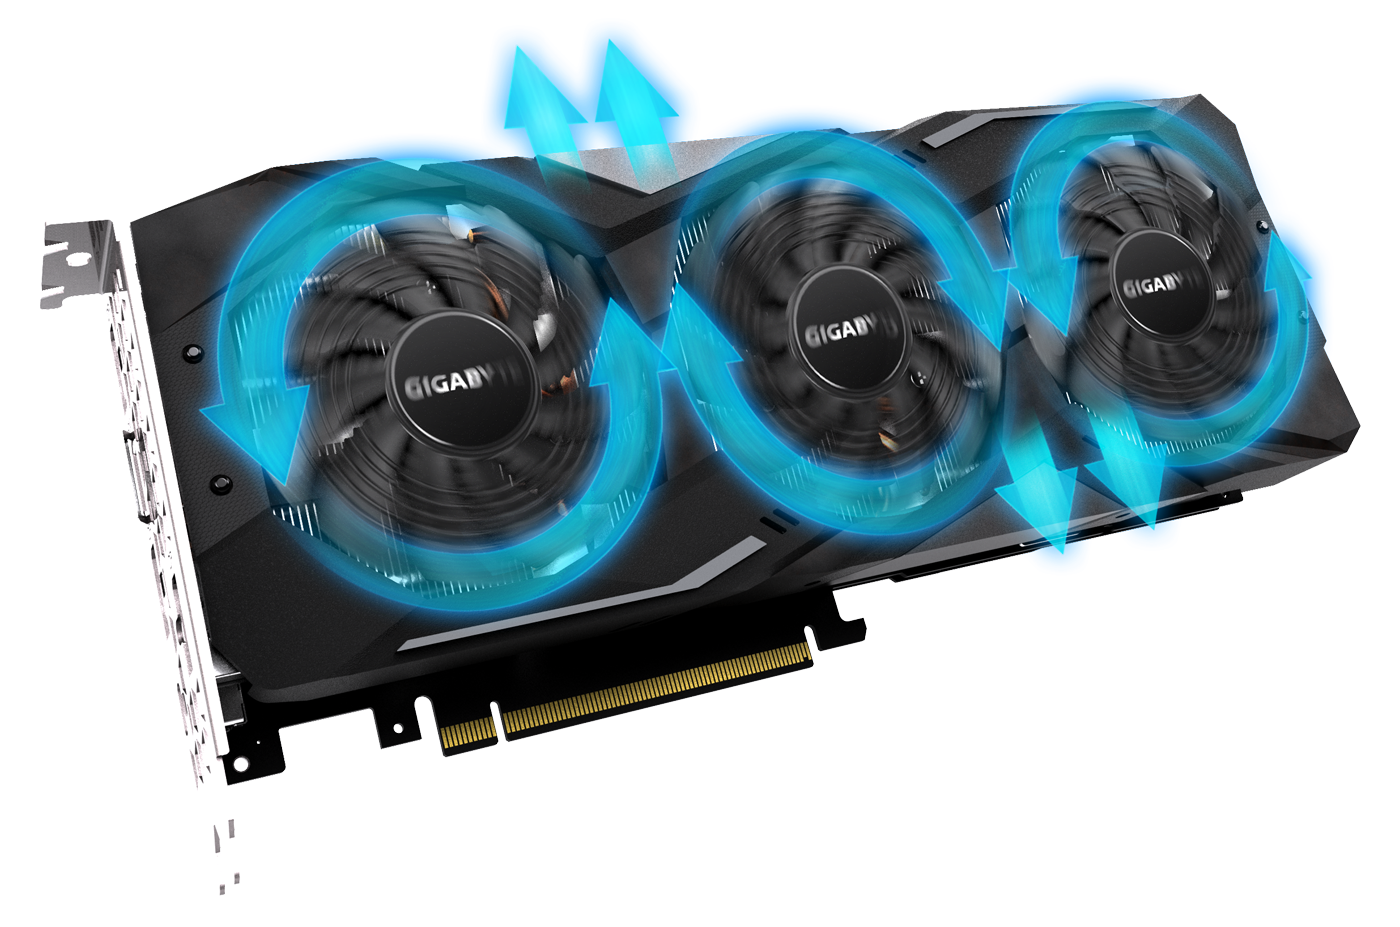 Blue Arrow Graphics Showing Alternate Spinning on the GIGABYTE GEFORCE RTX GV-N208TWF3OC-11GC Graphics Card